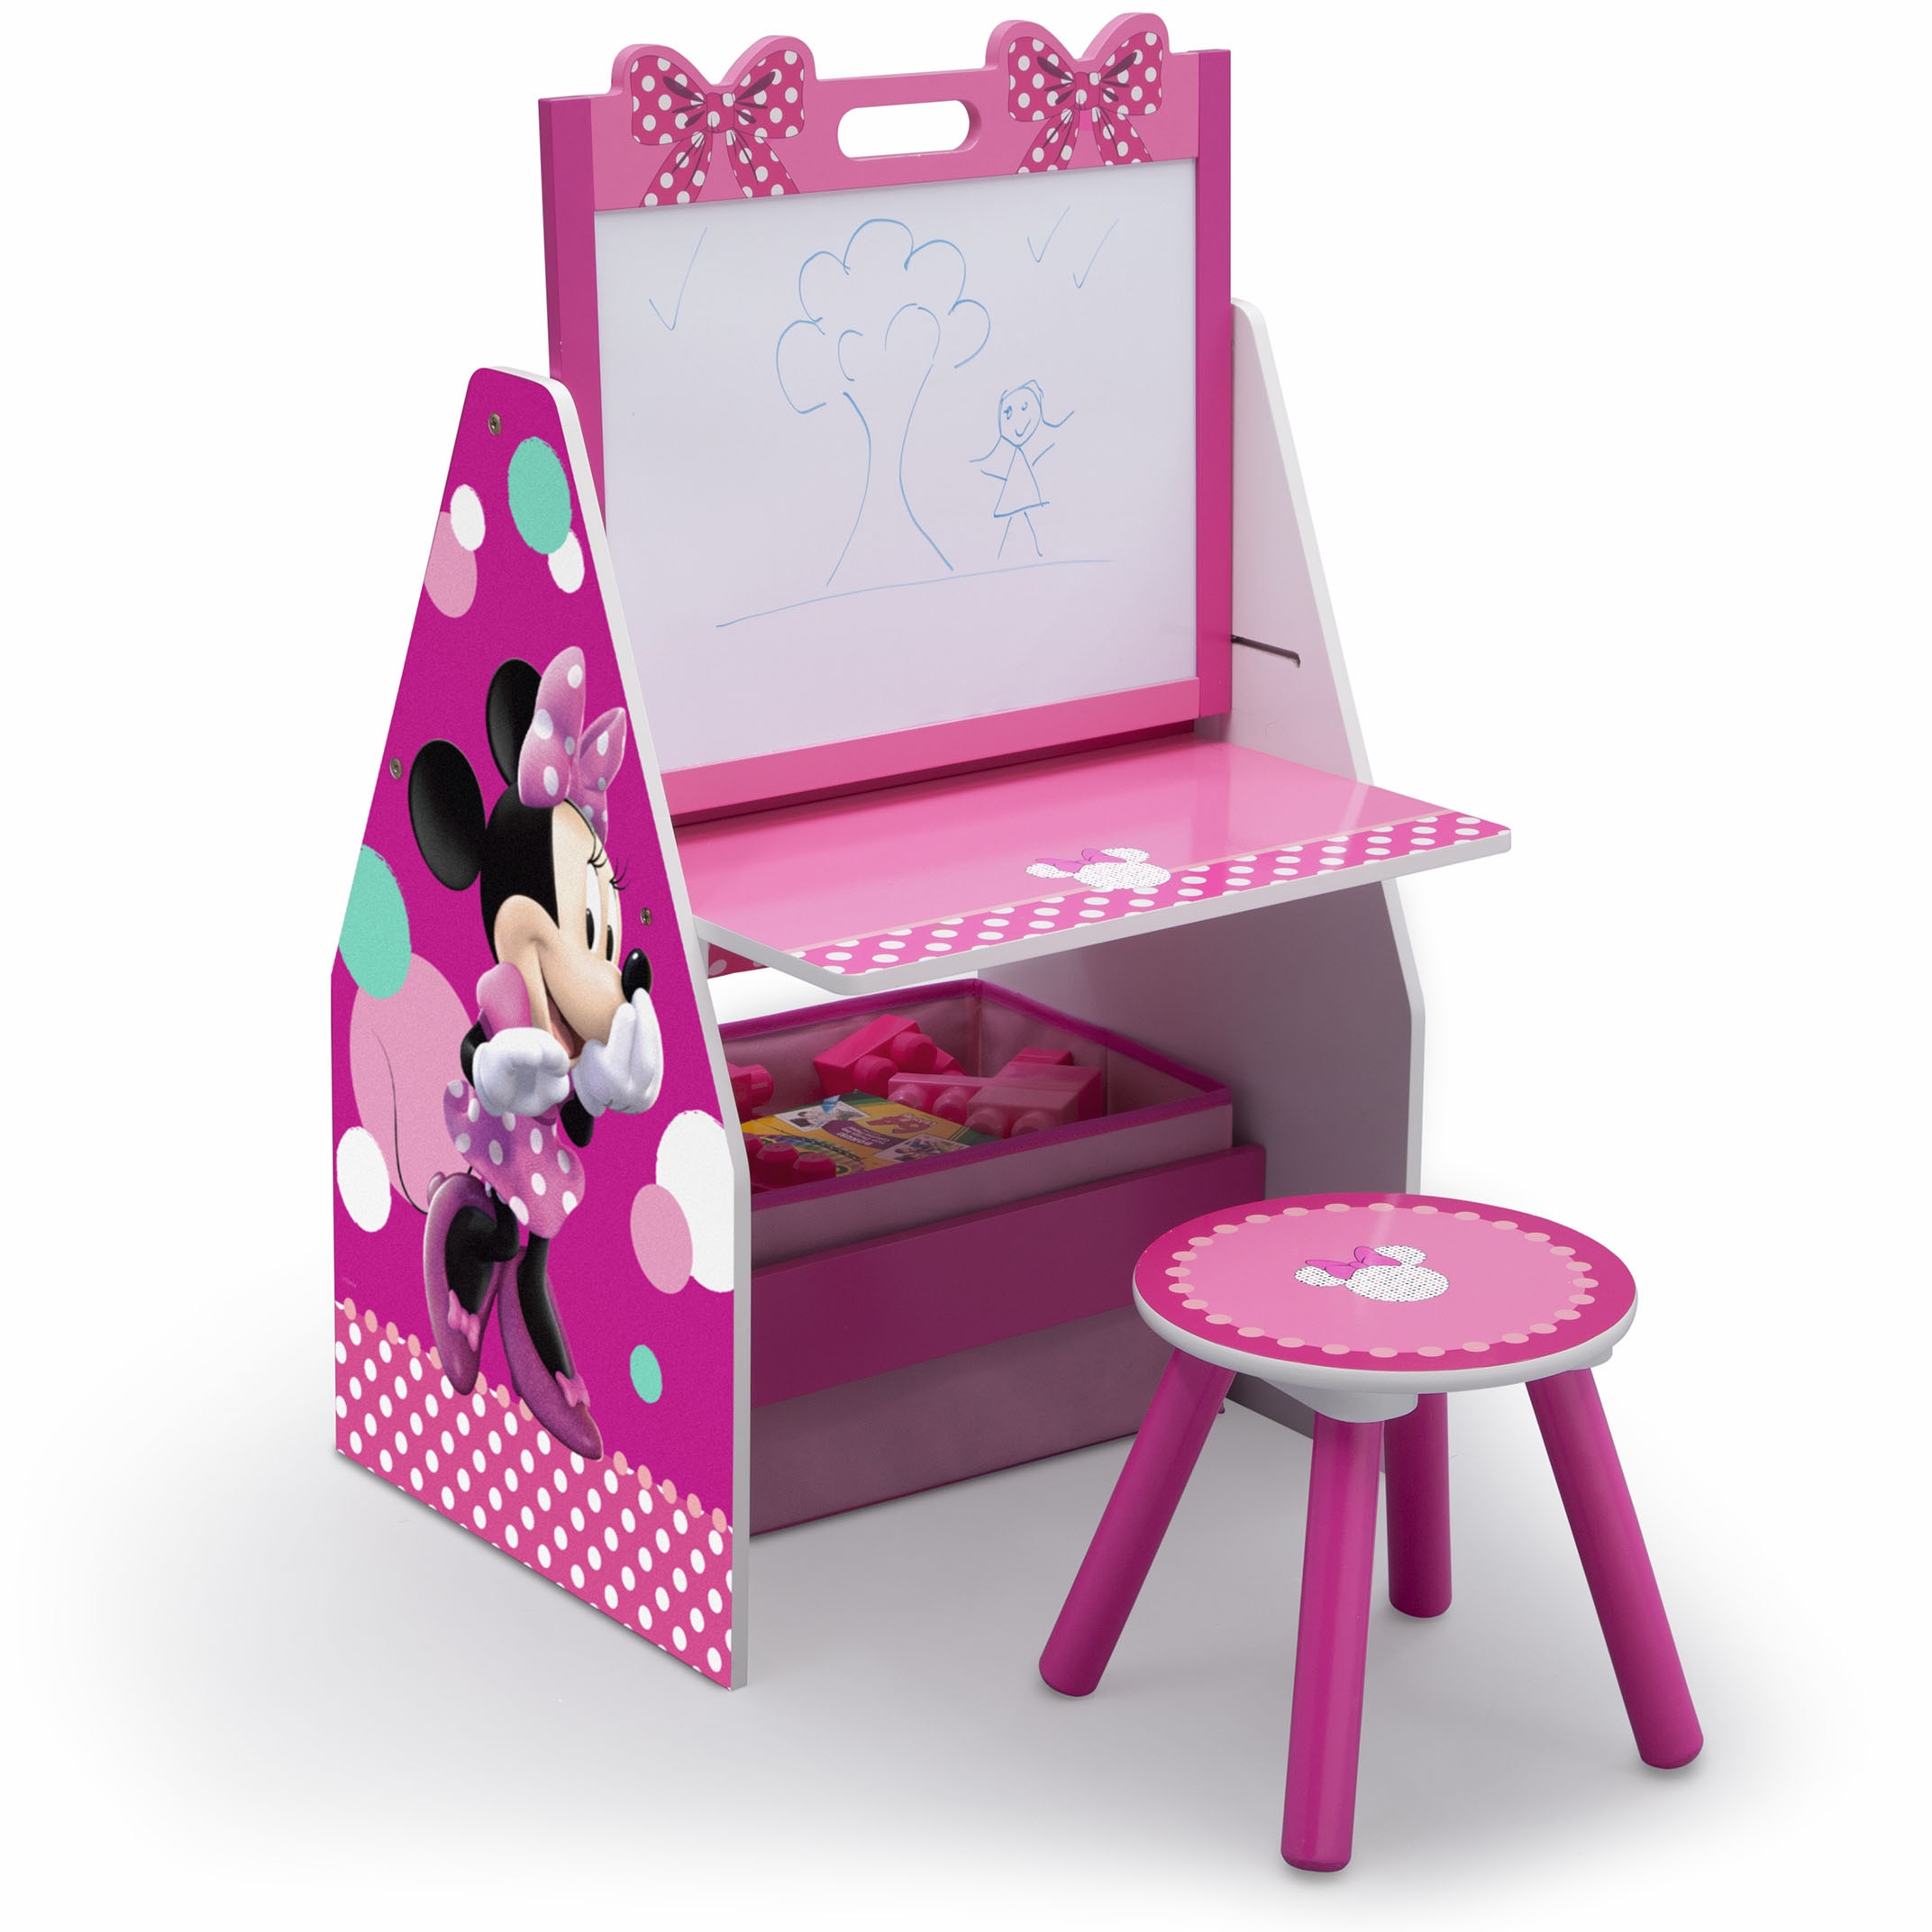 Disney Minnie Mouse Deluxe Kids Art Table | Easel, Desk, Stool & Toy Organizer by Delta Children